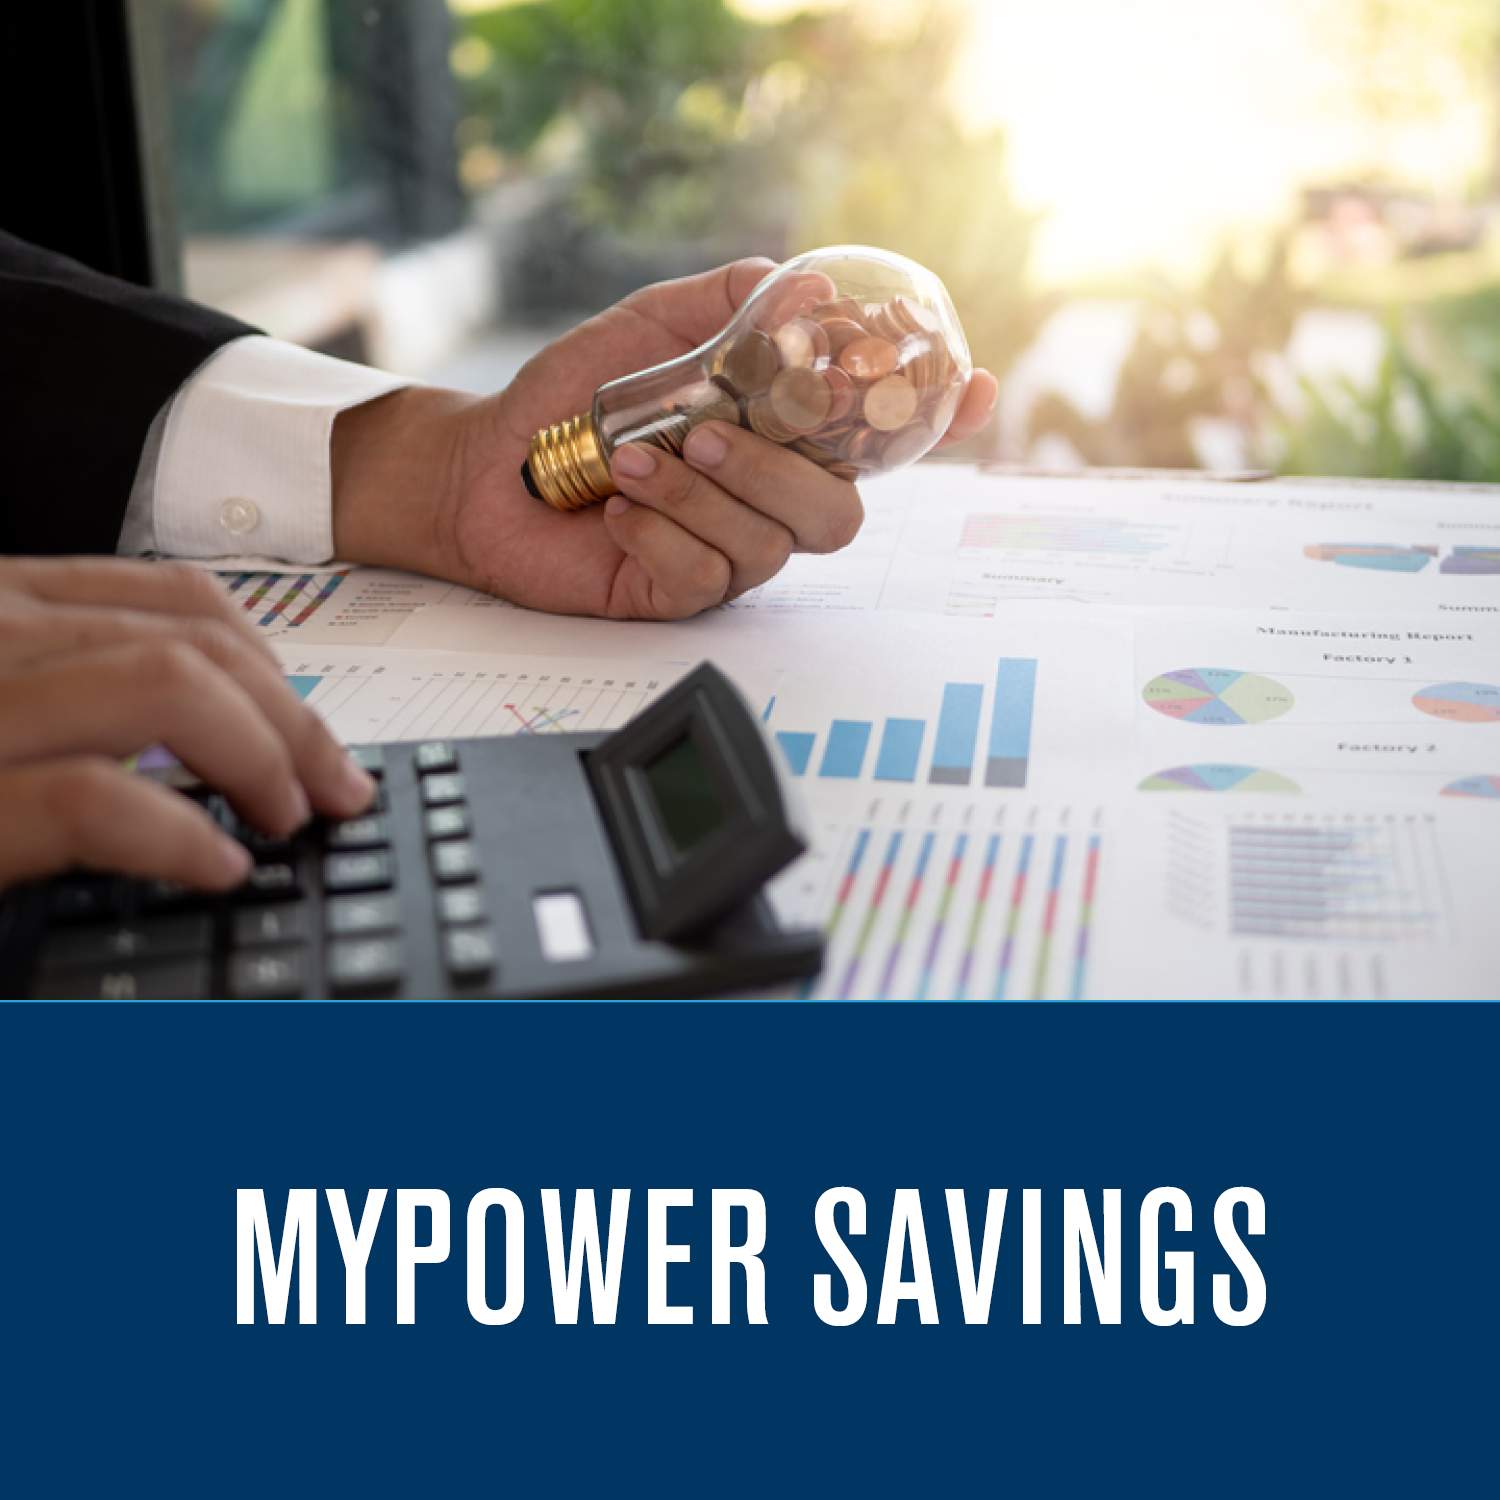 myPower Savings